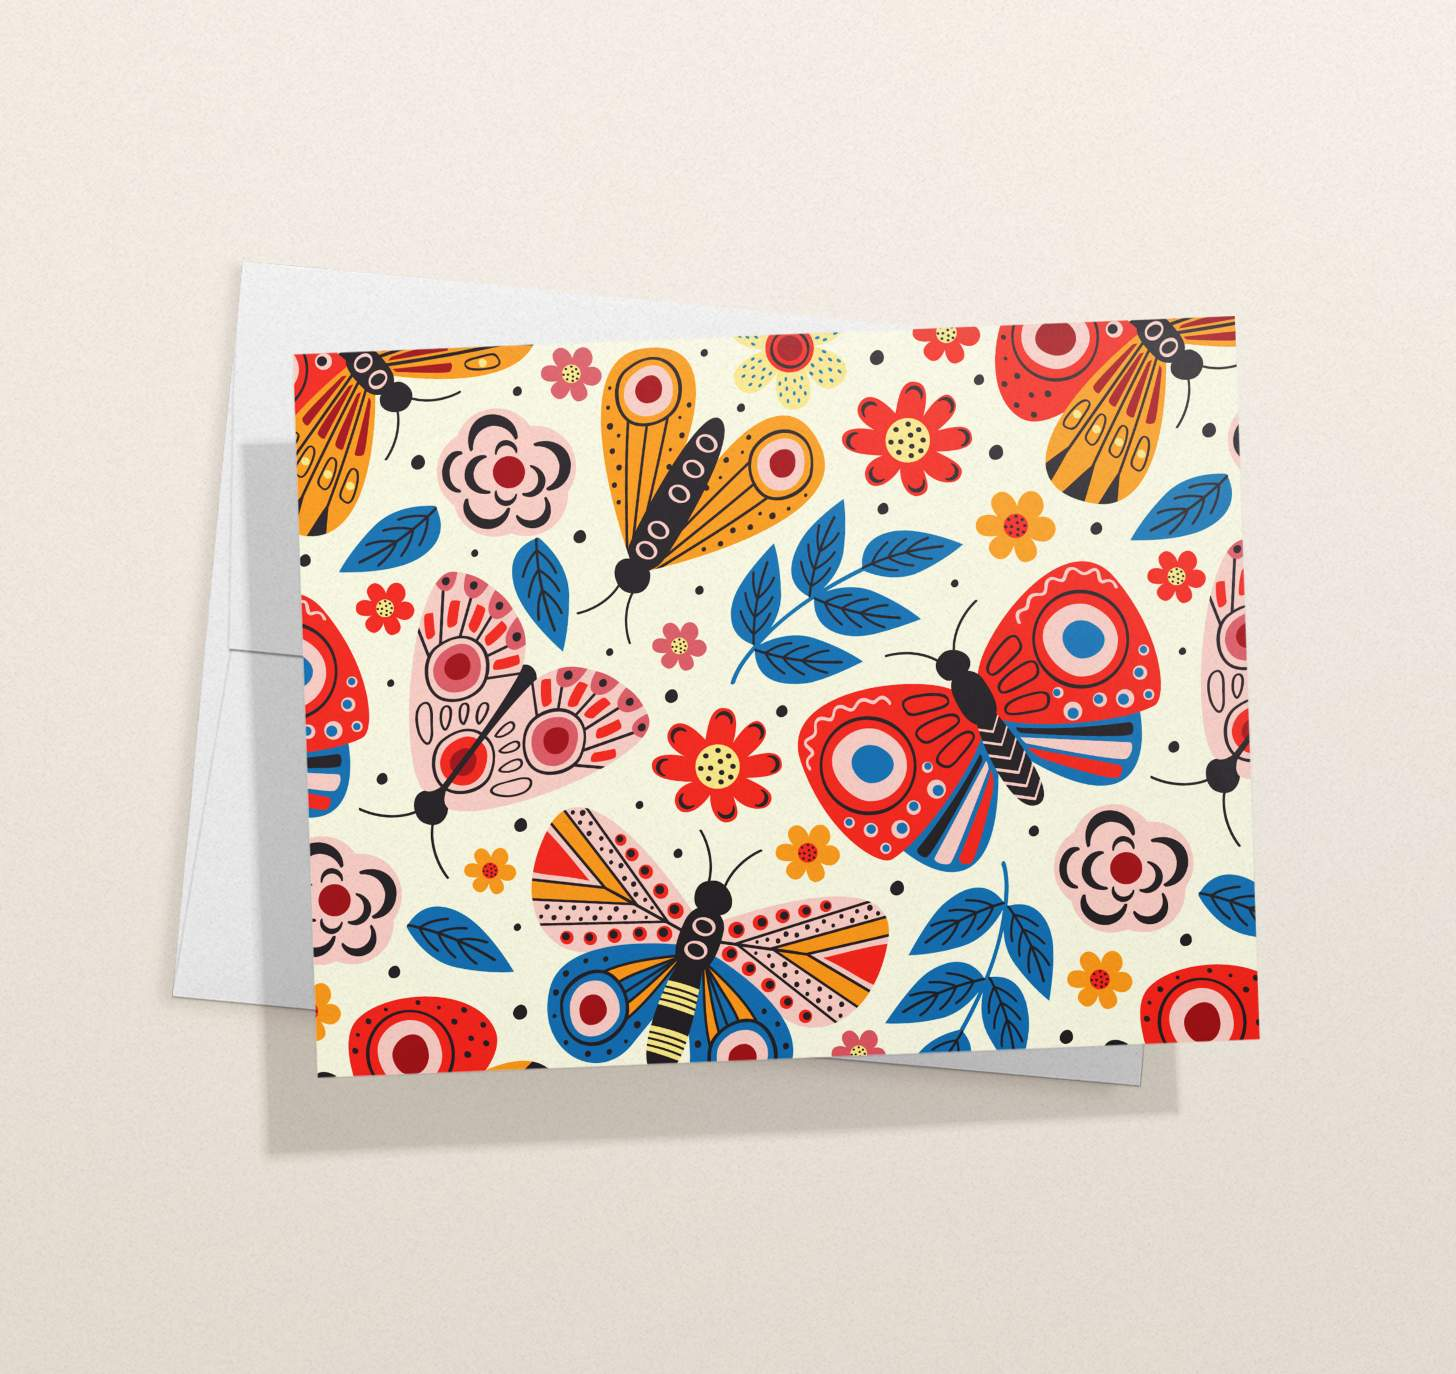 Multicolored butterflies design on white card with envelope